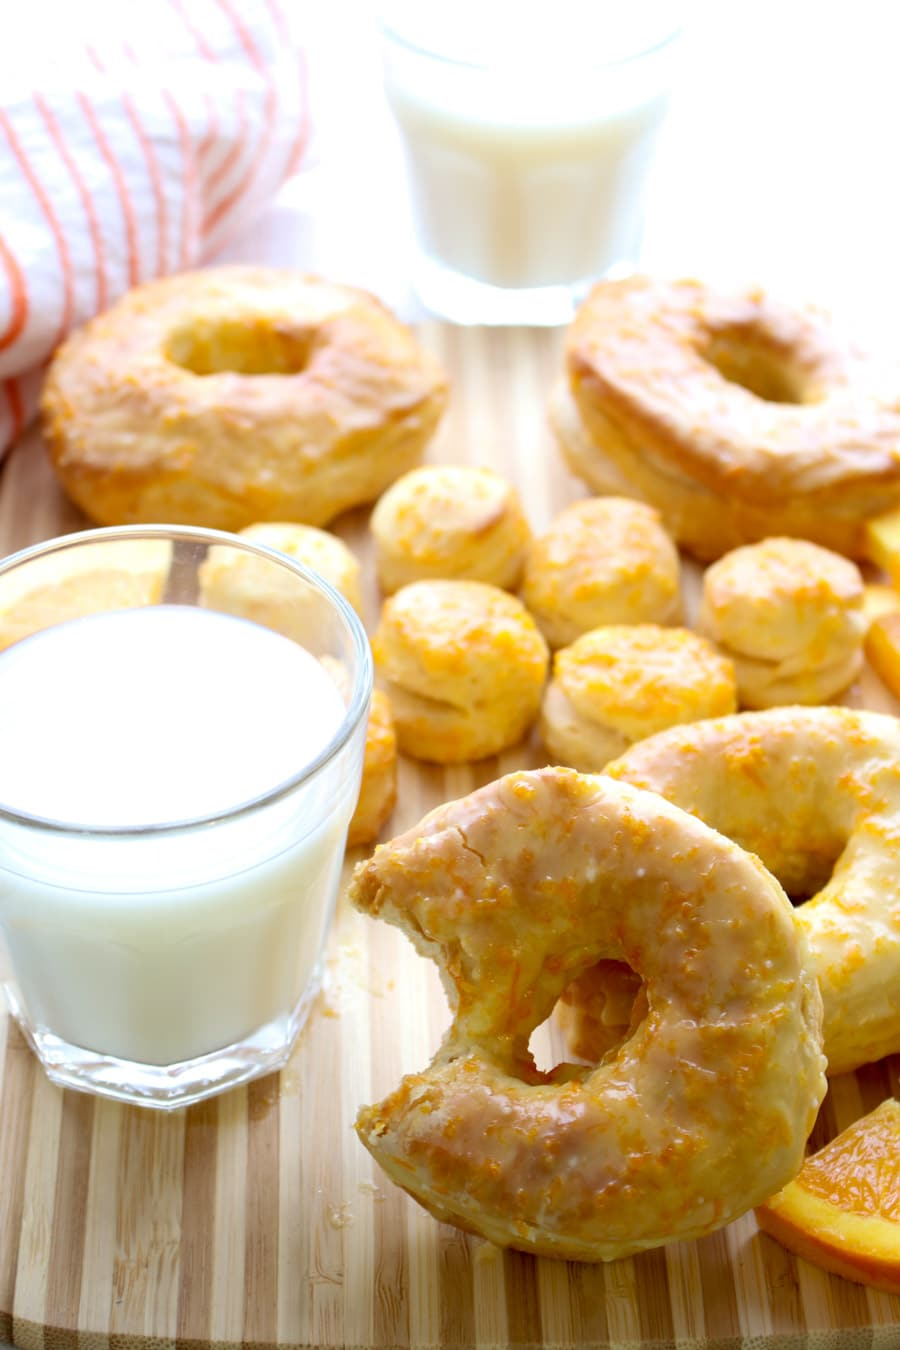 A donut with a bite out leaning against a glass of milk